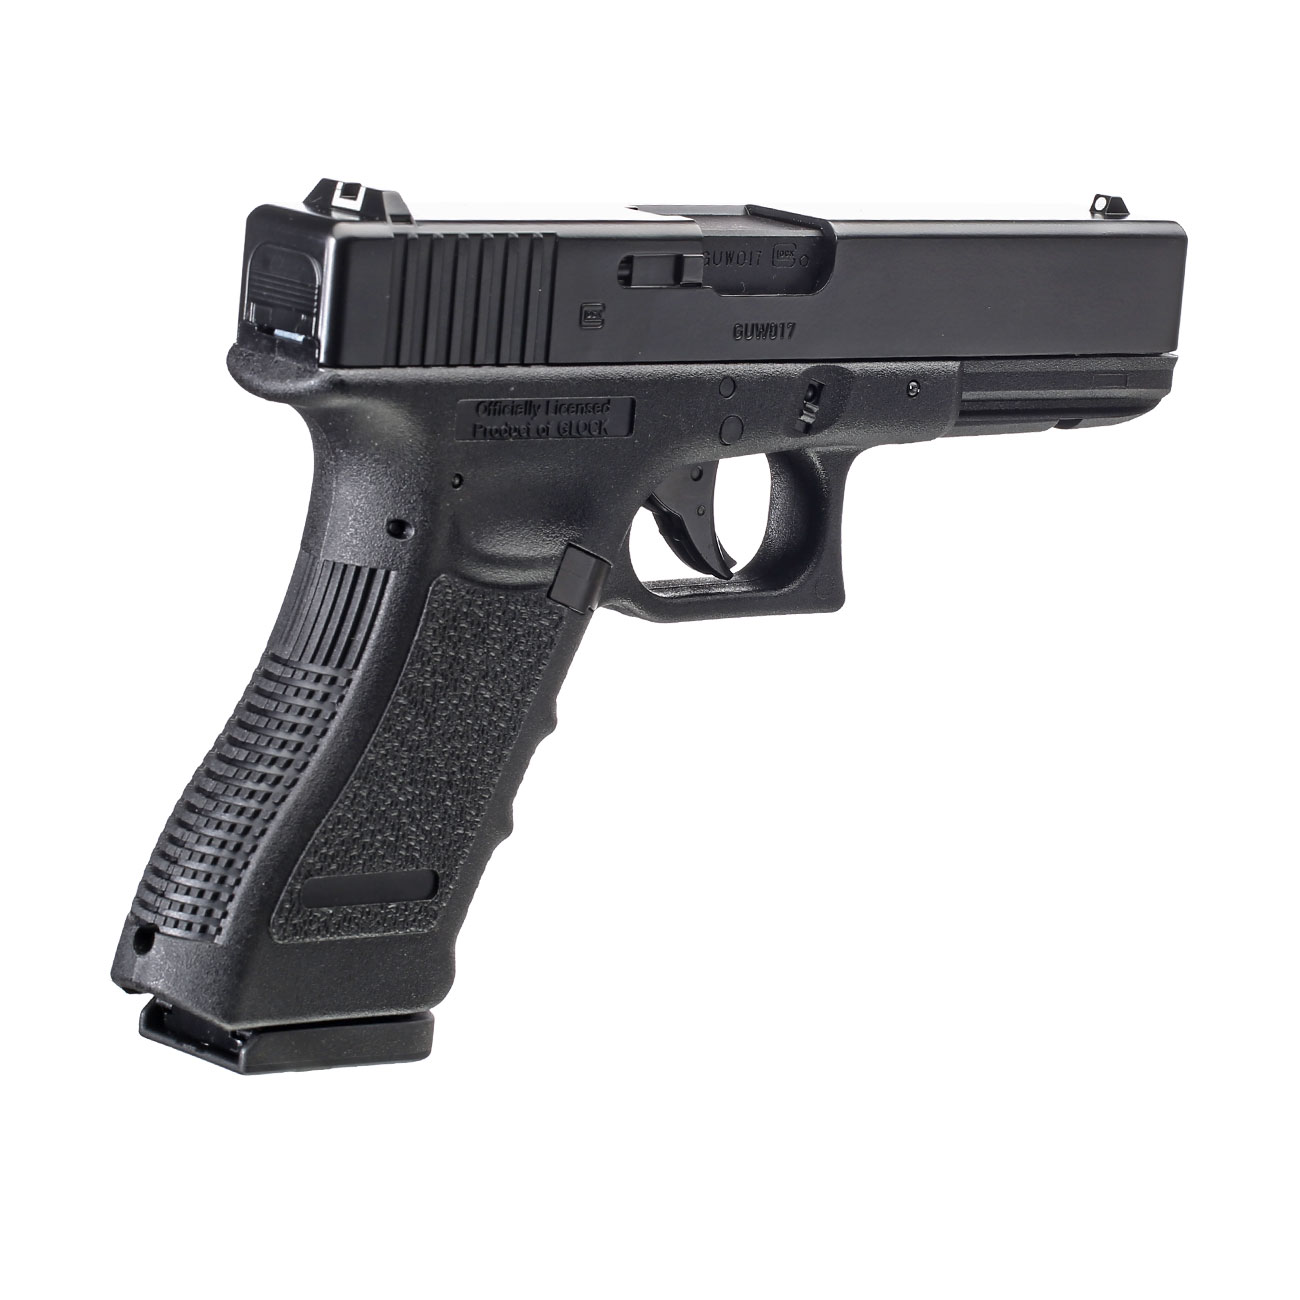 Glock 17 CO2 Luftpistole Kal. 4,5 mm BB 4